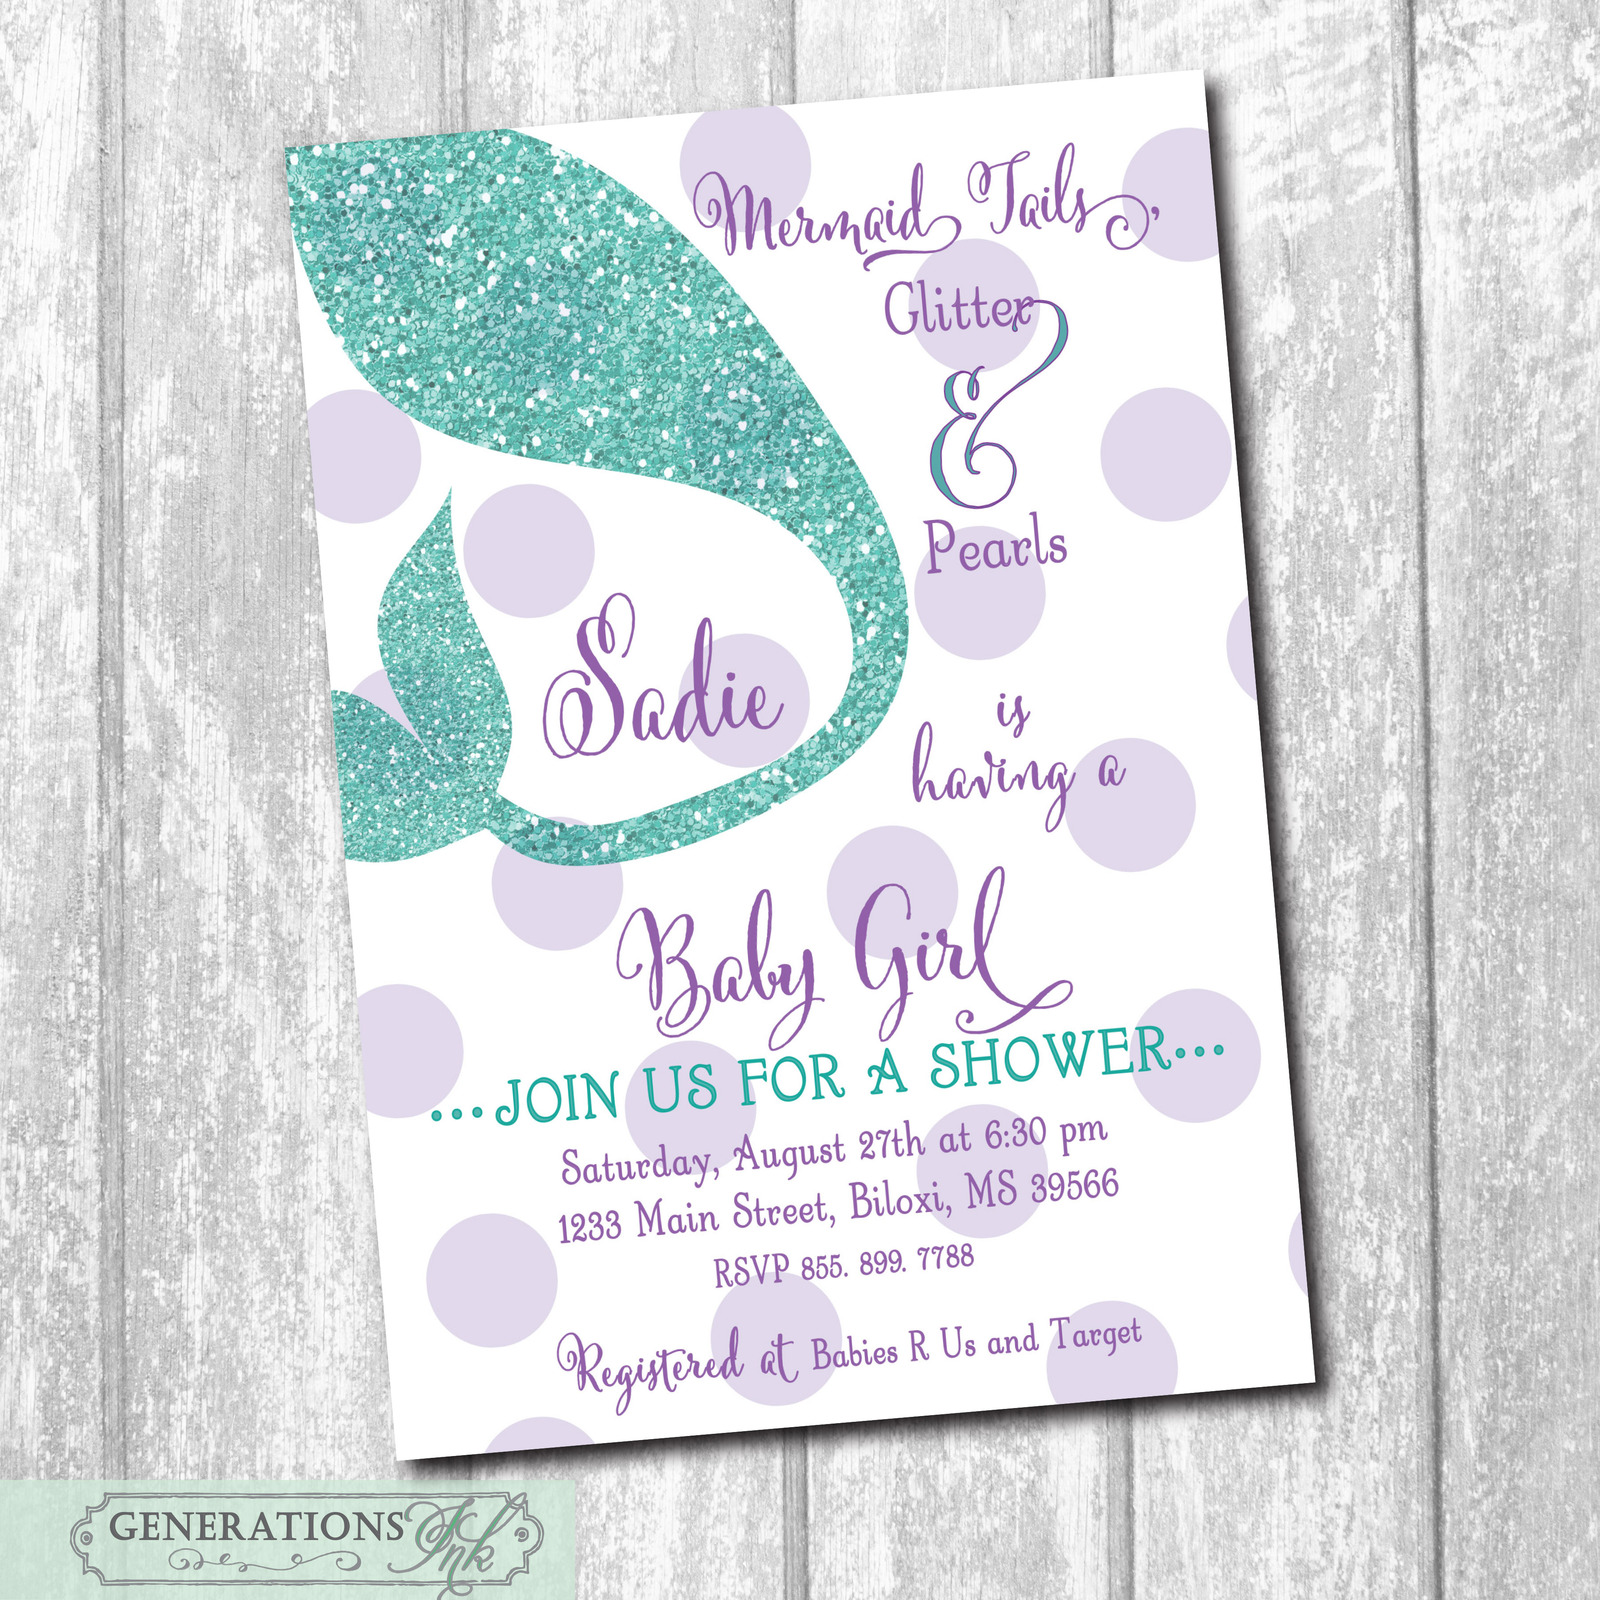 graphic regarding Printable Mermaid Baby Shower Invitations titled Mermaid Little one Shower Invitation Woman, Down below and 50 equivalent merchandise